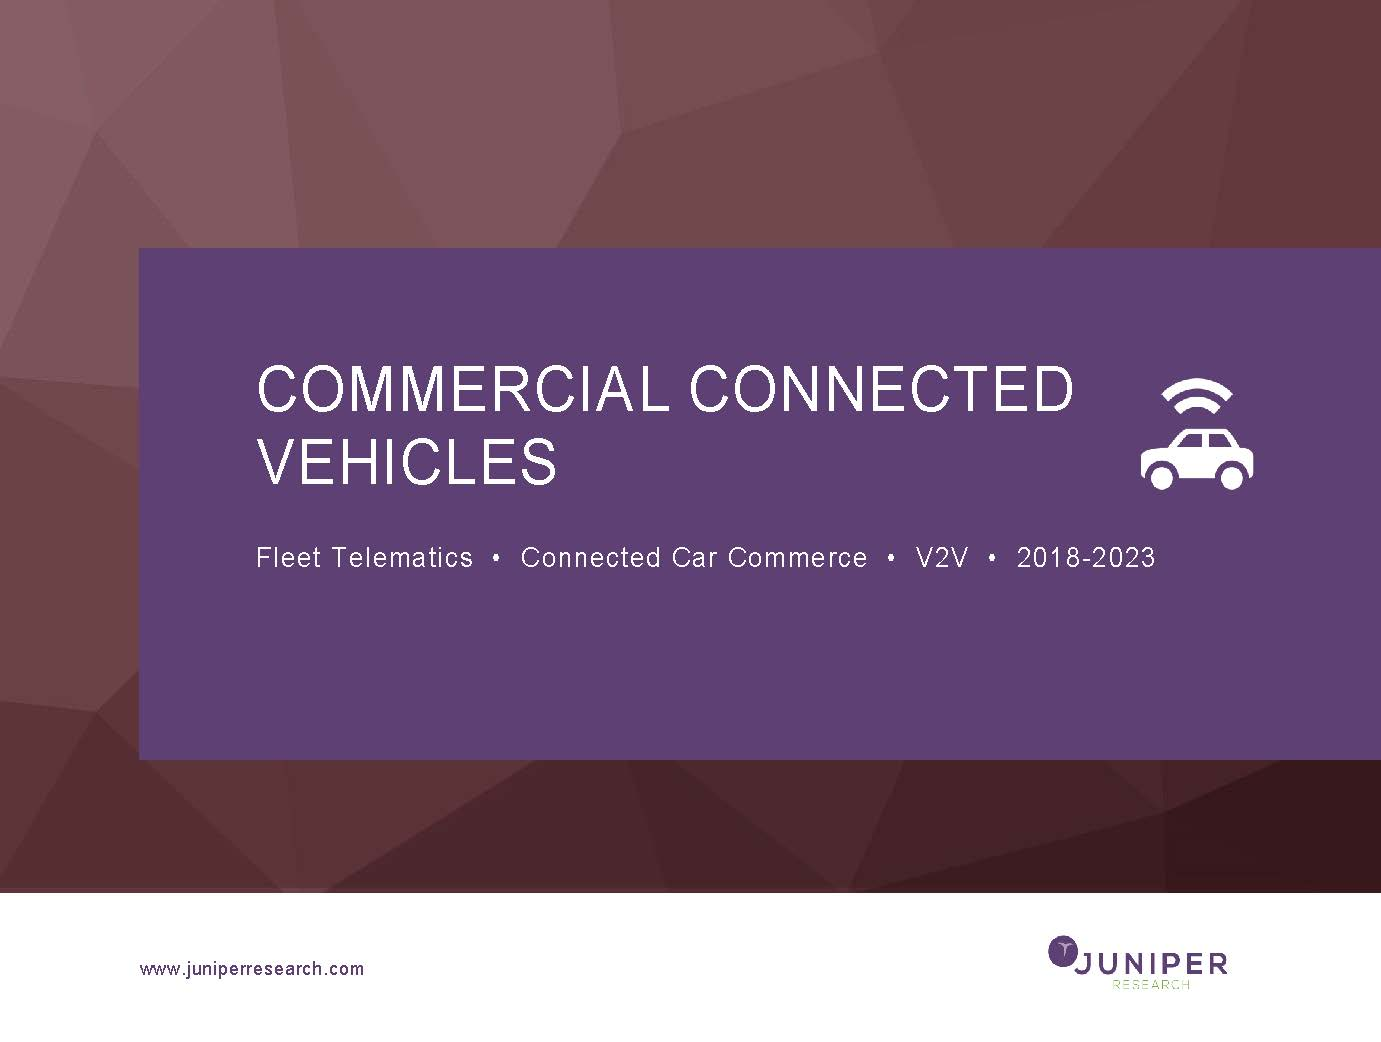 Commercial Connected Vehicles: Fleet Telematics, Connected Car Commerce & V2V 2018-2023